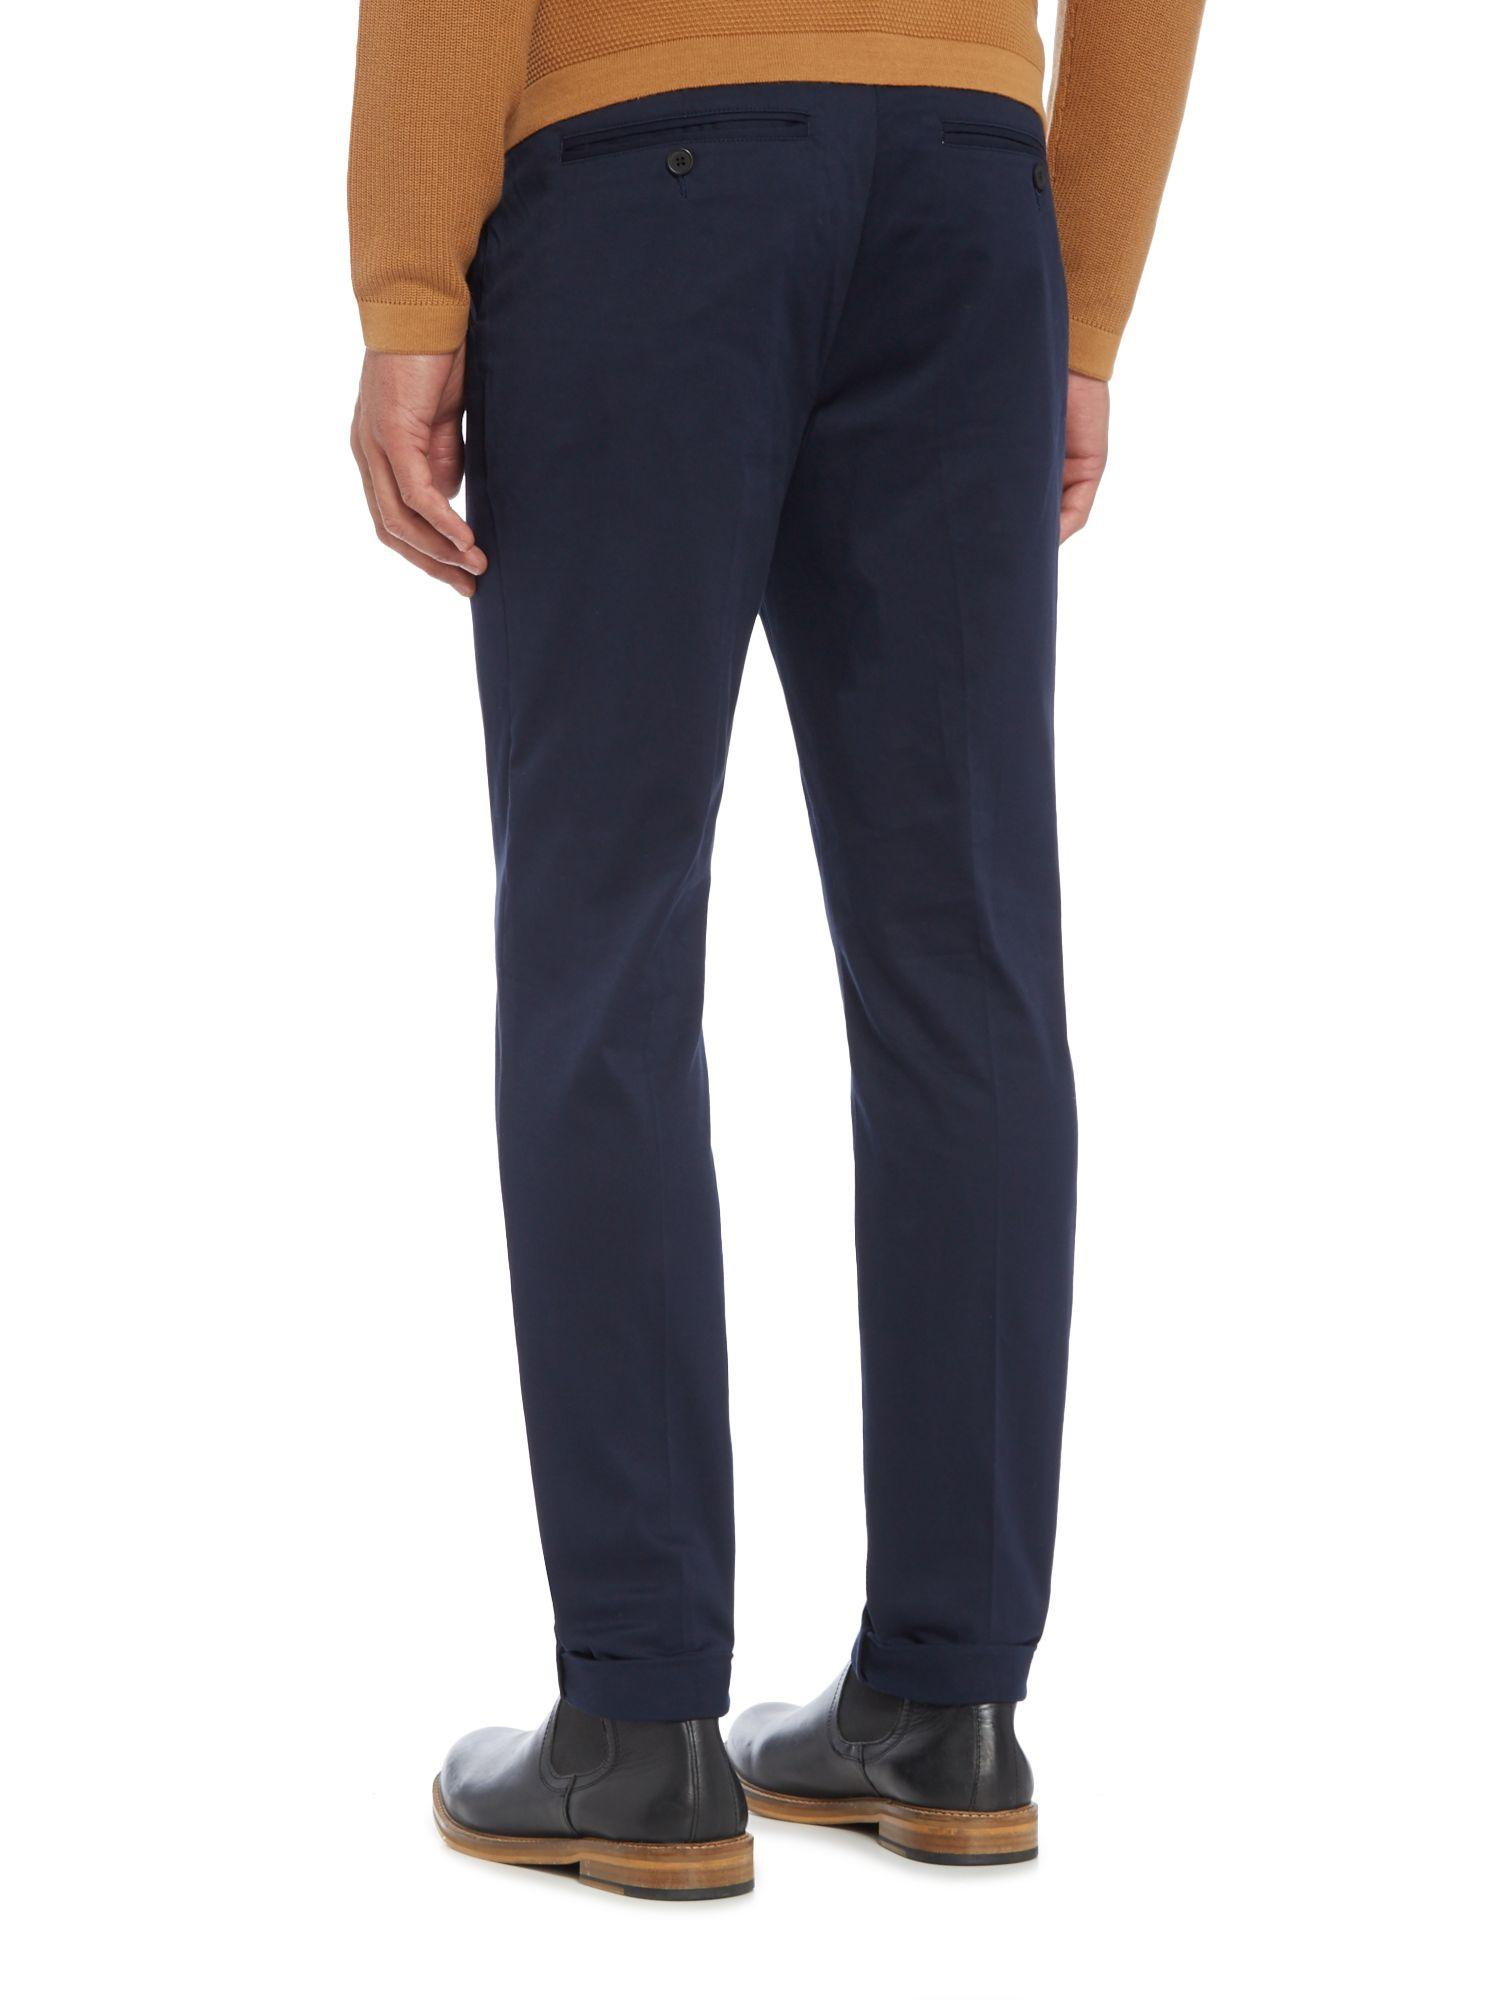 Minimum Cotton Slim Fit Formal Trousers in Navy (Blue) for Men